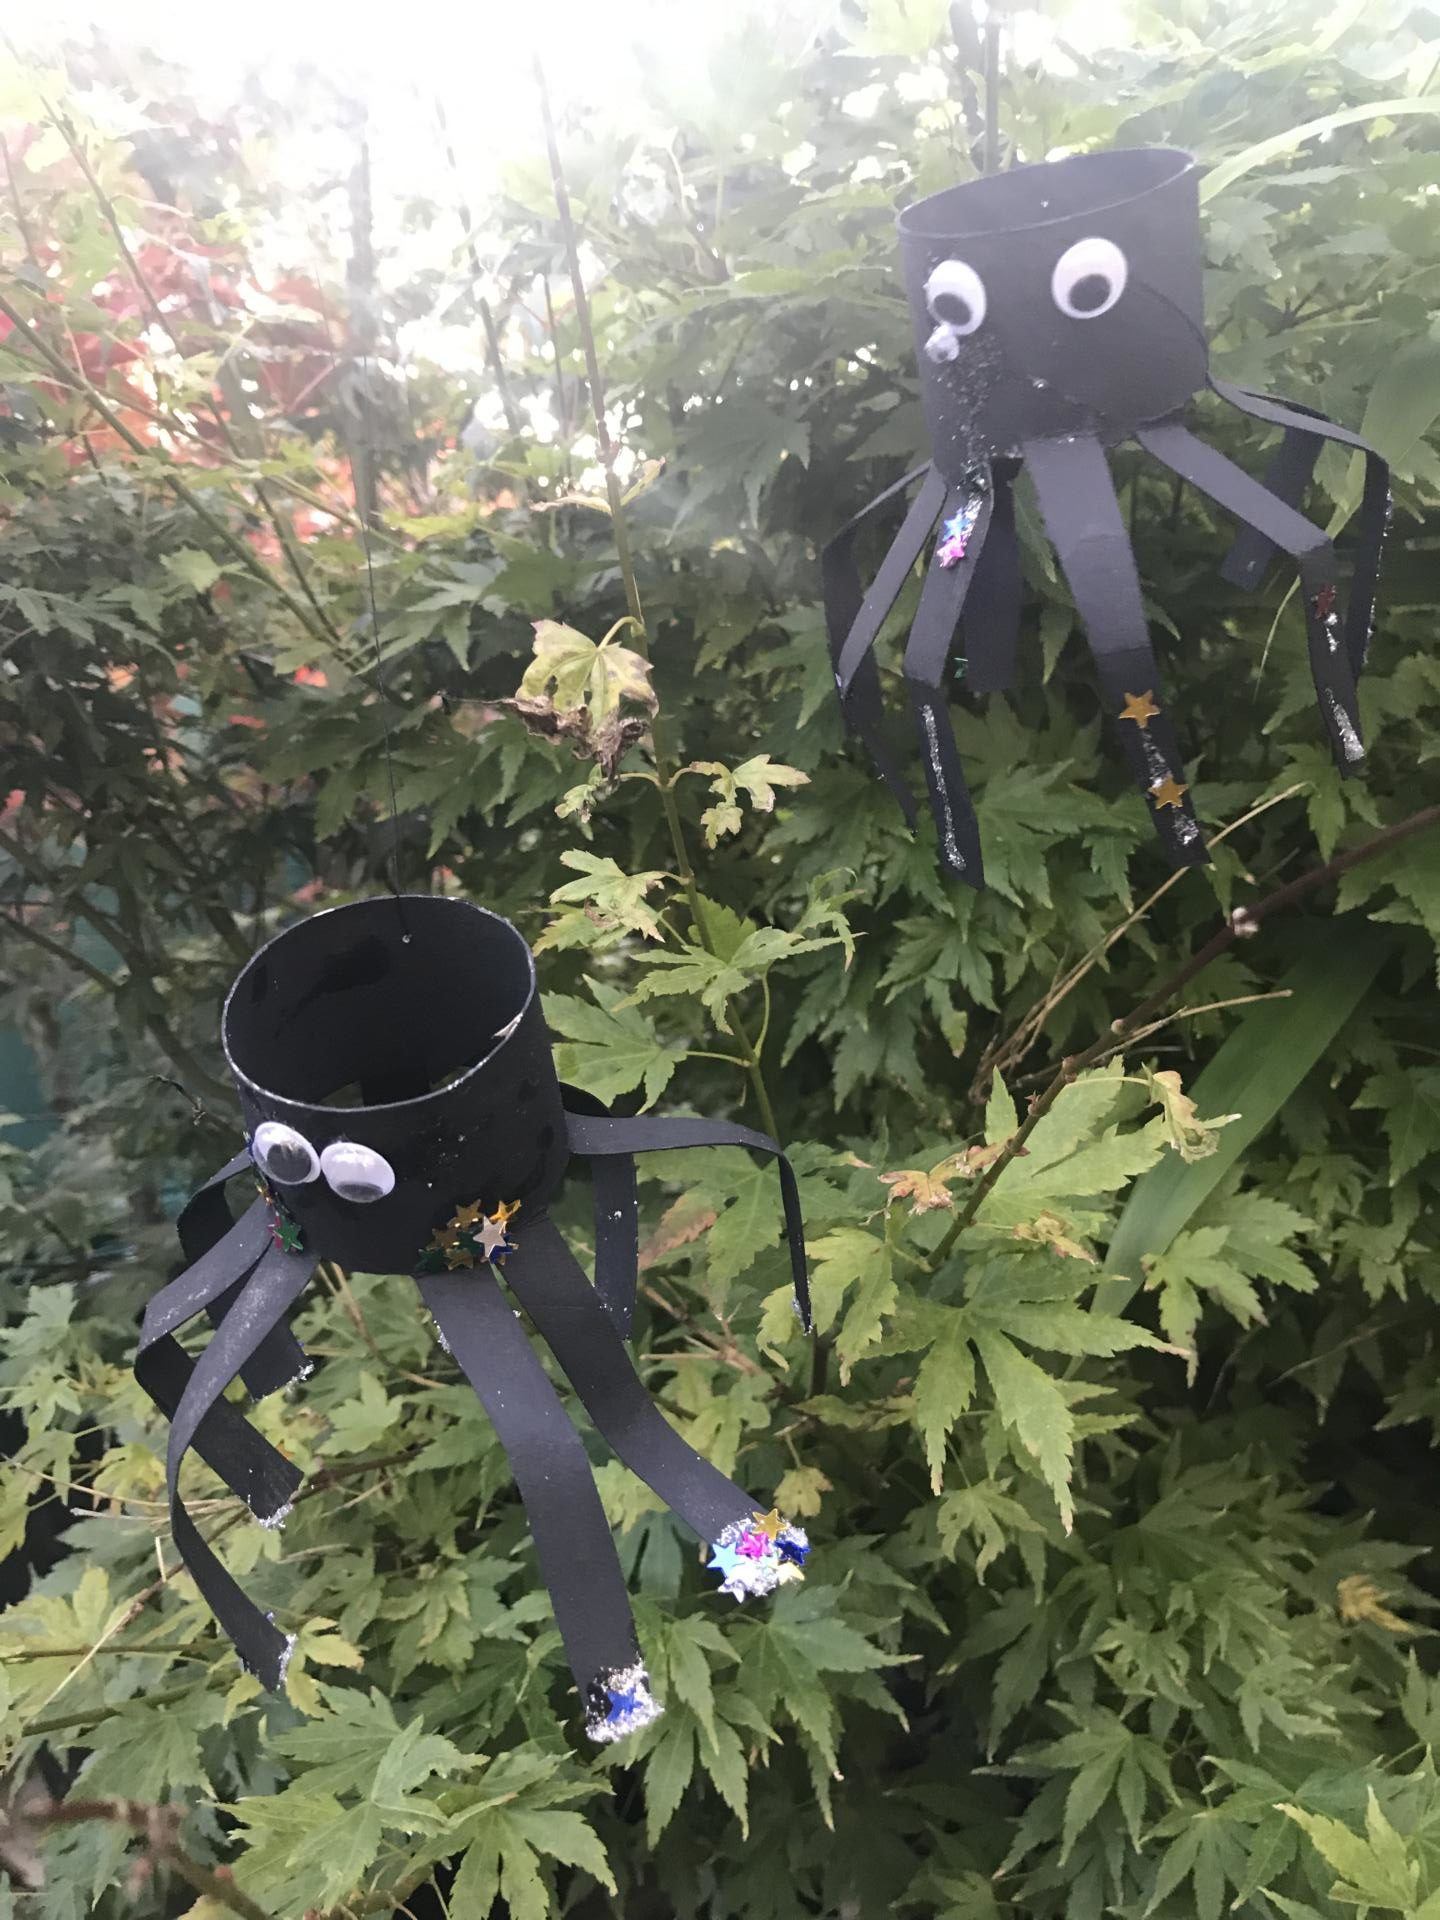 How to make BOO-TASTIC Halloween spiders - Autumn crafts